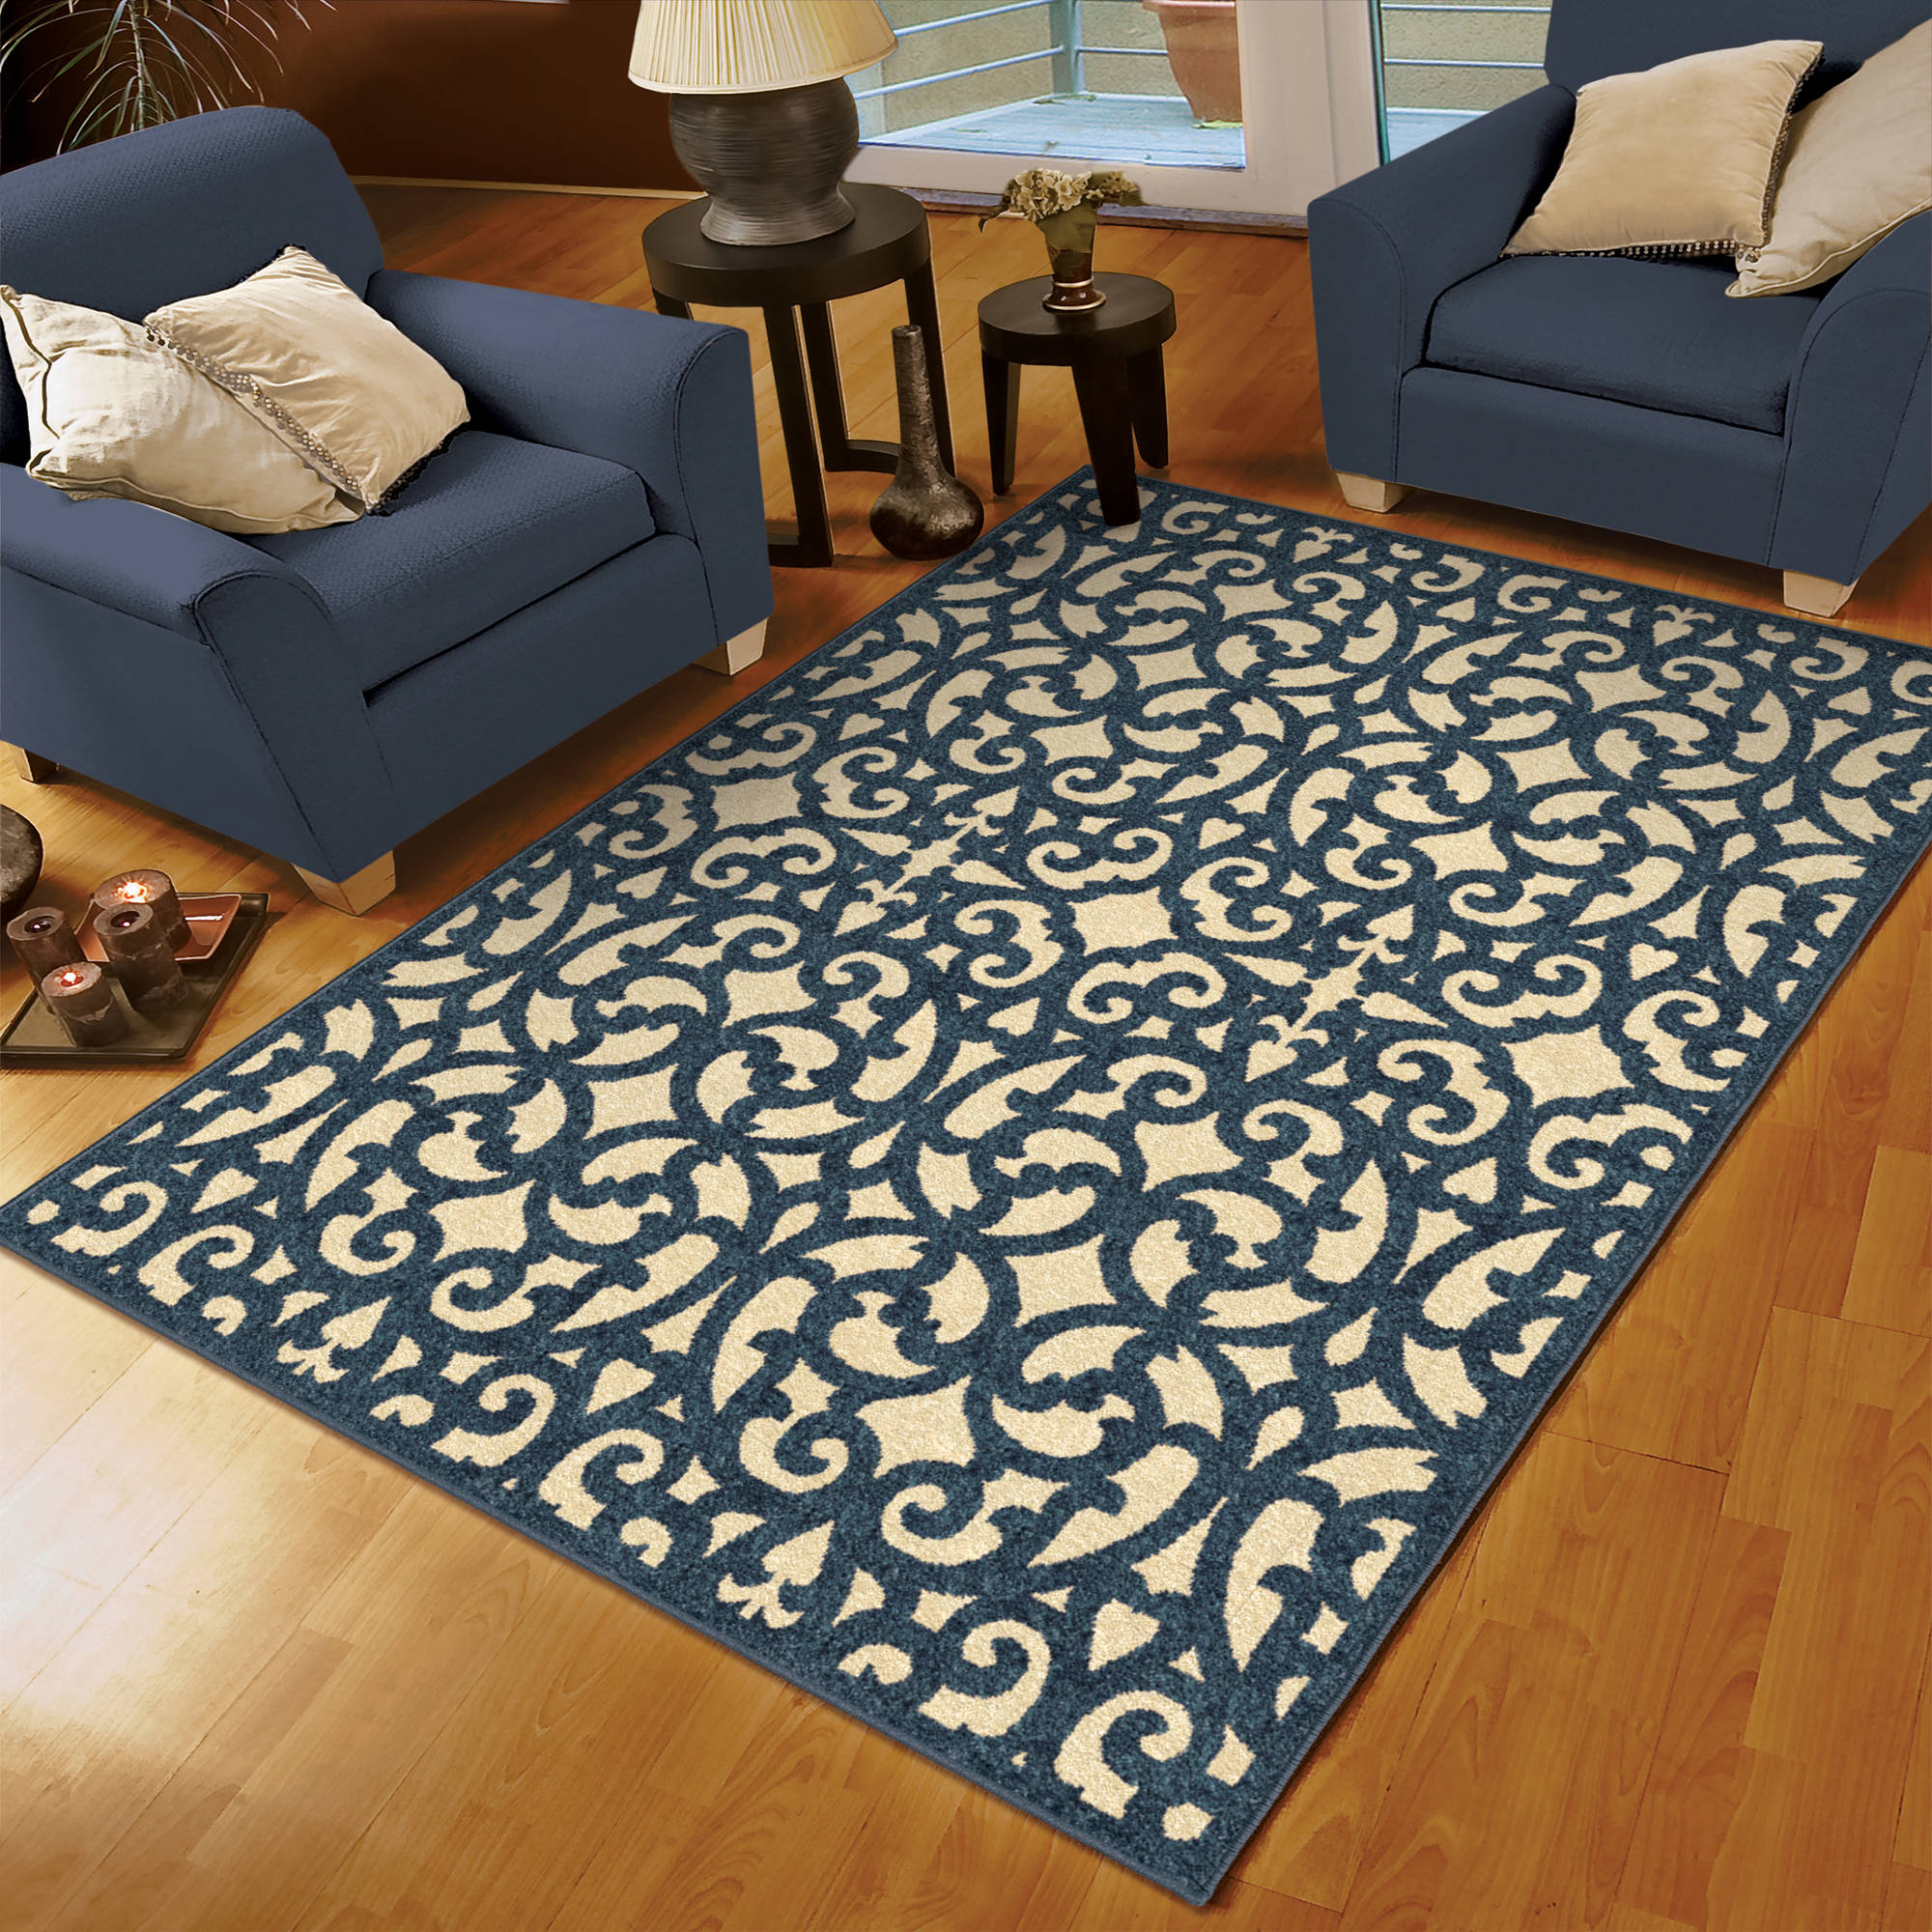 3 by 5 area rugs | roselawnlutheran